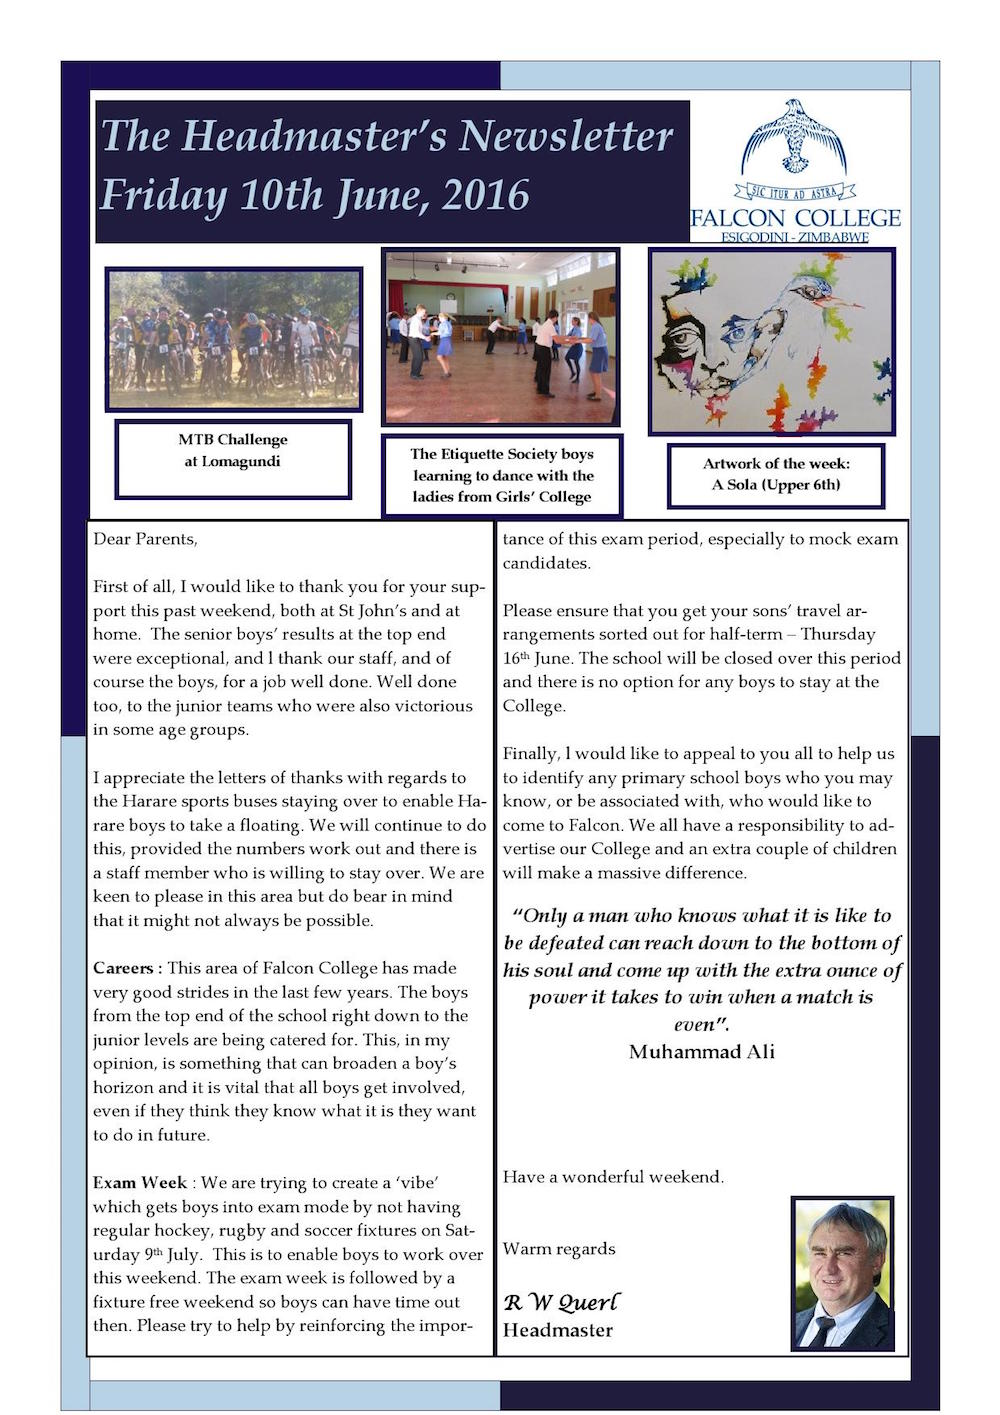 Headmaster's Newsletter - Friday 10th June '16_000001